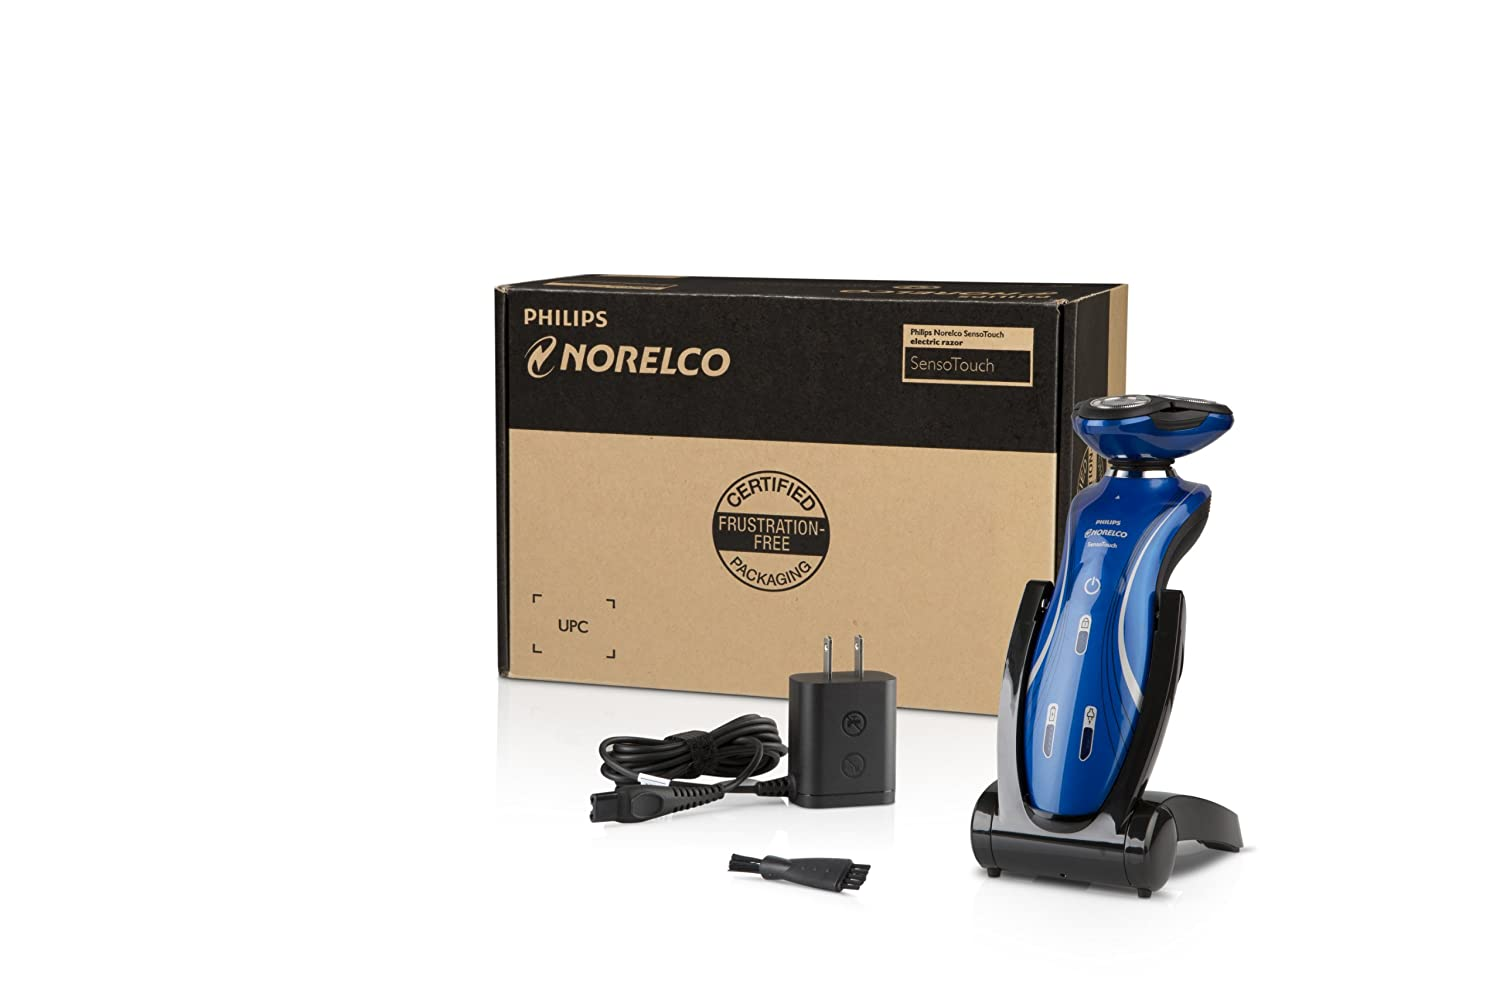 Philips Norelco 1150X/46 SensoTouch 2D Electric Razor, Frustration Free Packaging $55